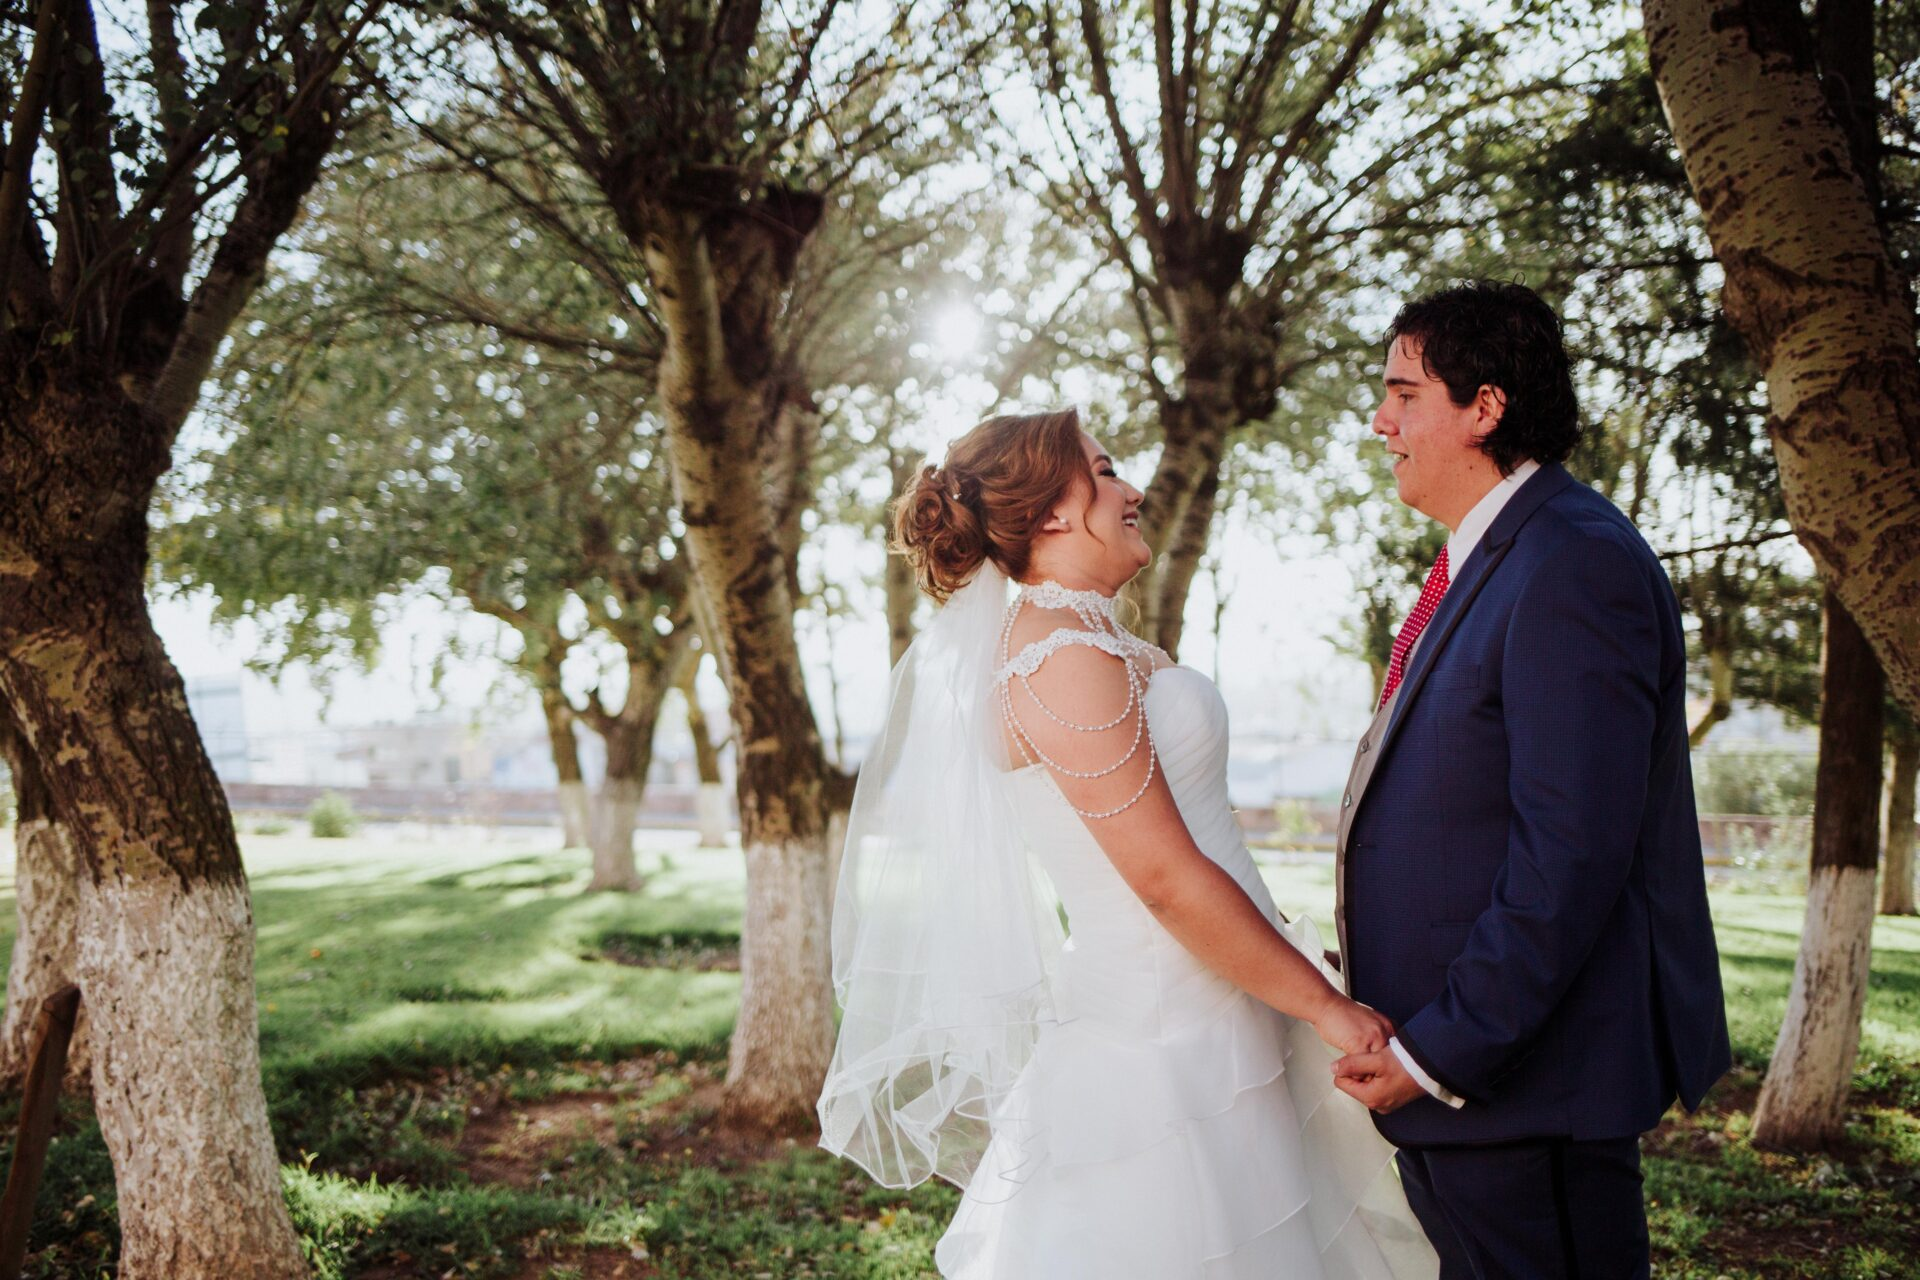 javier_noriega_fotografo_bodas_gaviones_zacatecas_wedding_photographer12